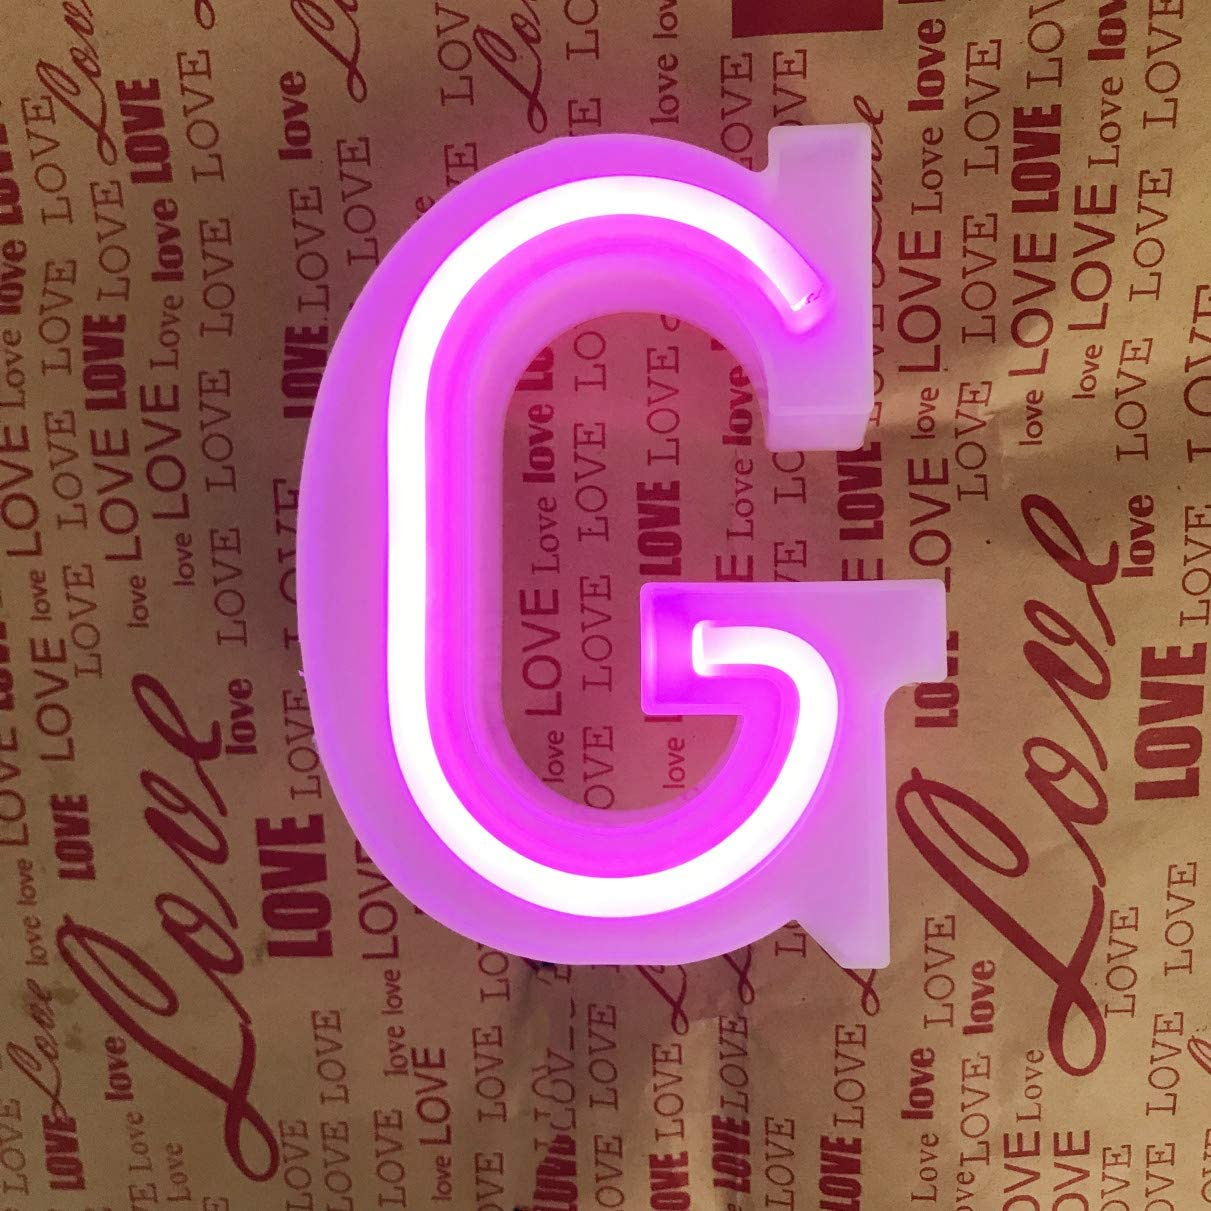 QiaoFei Light Up Marquee Letters Lights Letters Neon Signs, Pink Wall Decor/Table Decor for Home Bar Christmas, Birthday Party, Valentine's Day Words-Pink Letters (G)